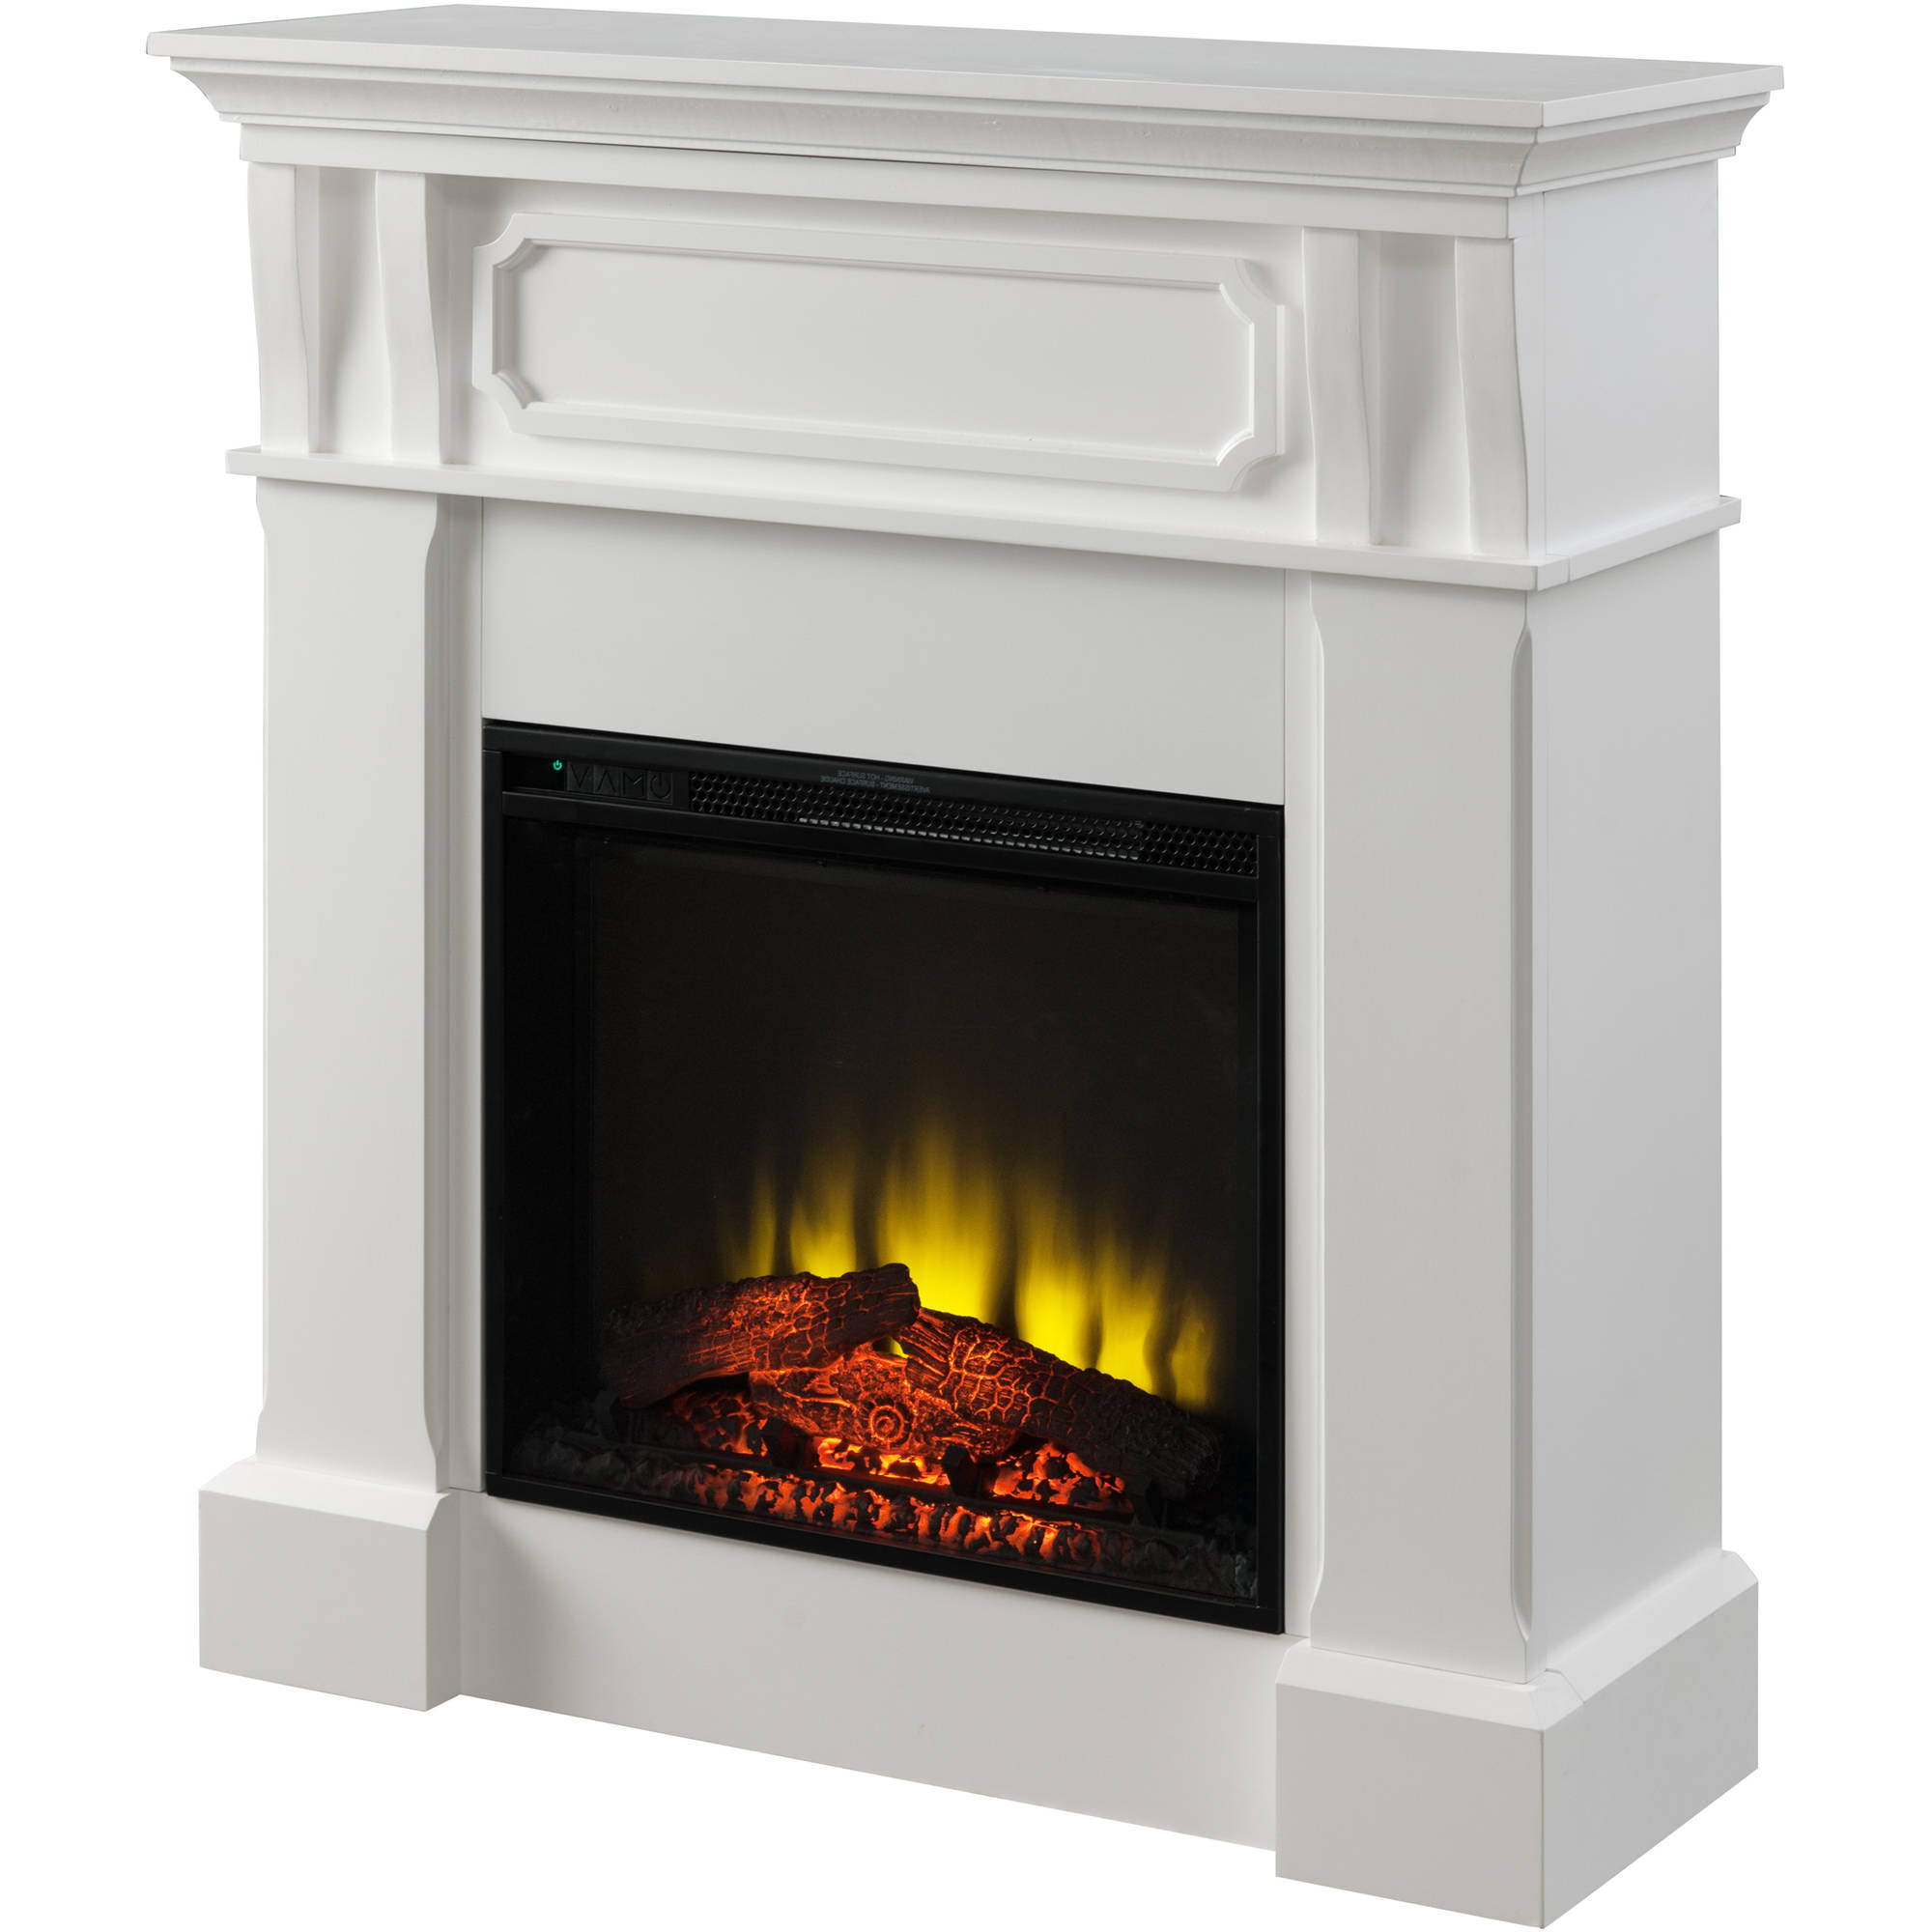 How Much Do Gas Fireplace Logs Cost Fireplaces Walmart